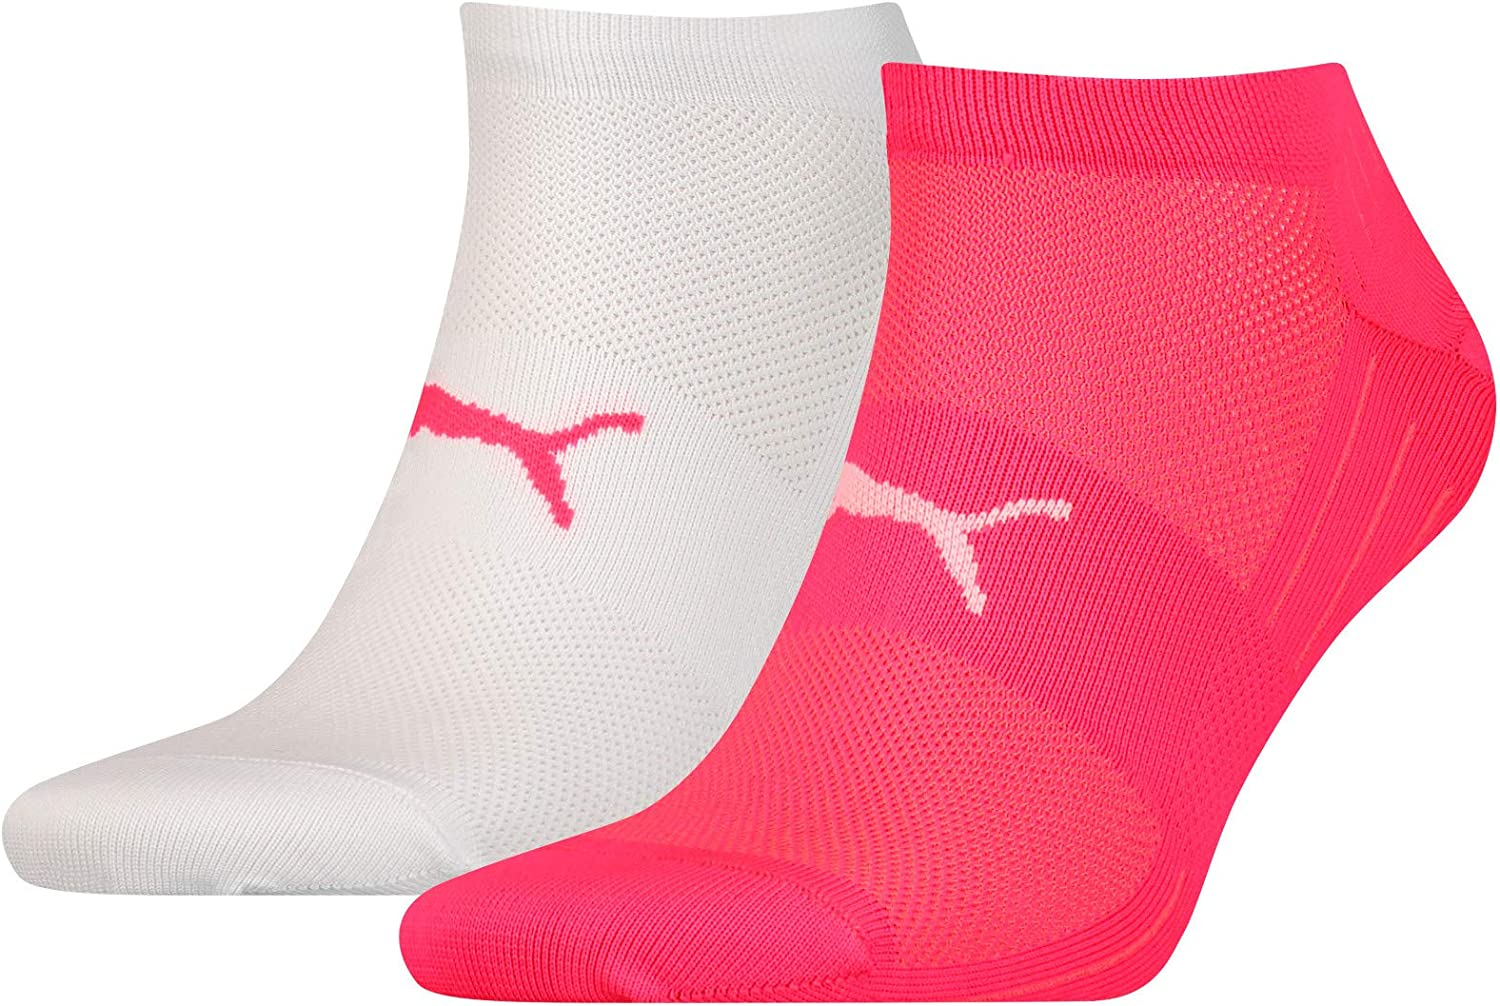 Puma Damen Socken Footie 2er Pack